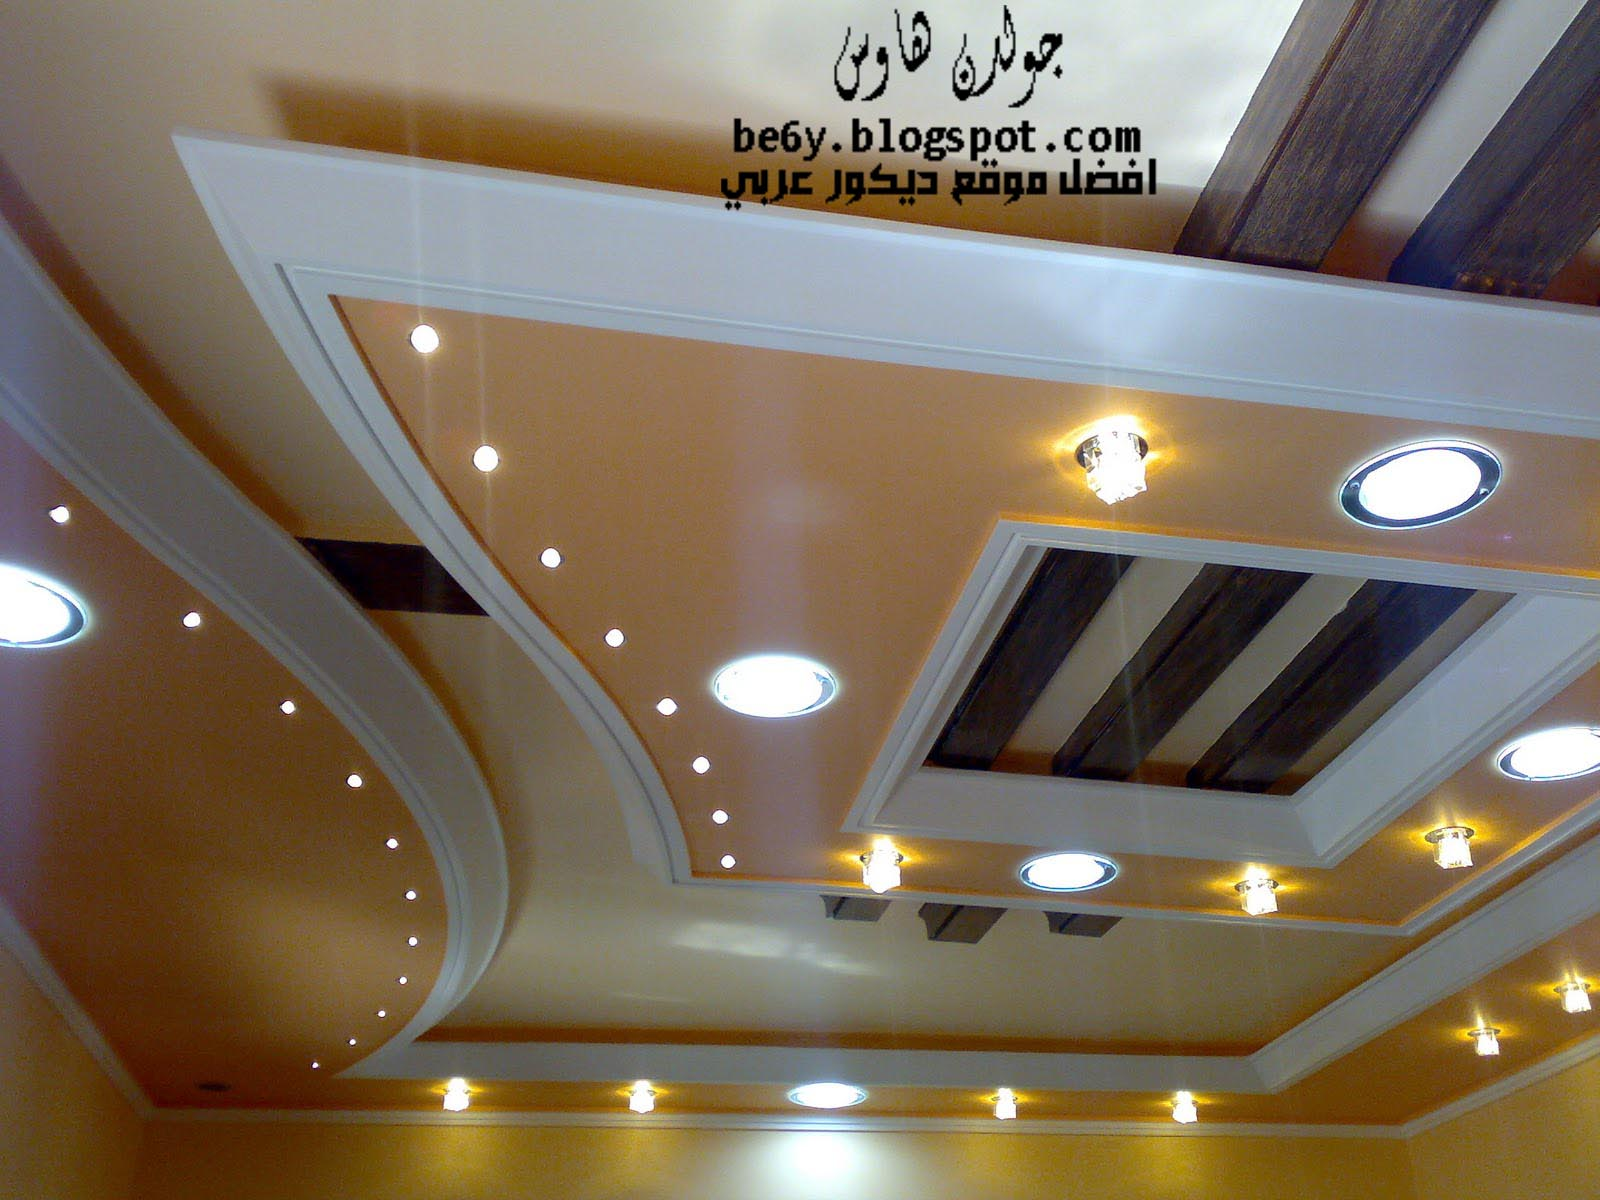 اسقف معلقة جبس بورد http://be6y.blogspot.com/2013/01/modern-gypsum-ceilings-suspended-ceilings.html